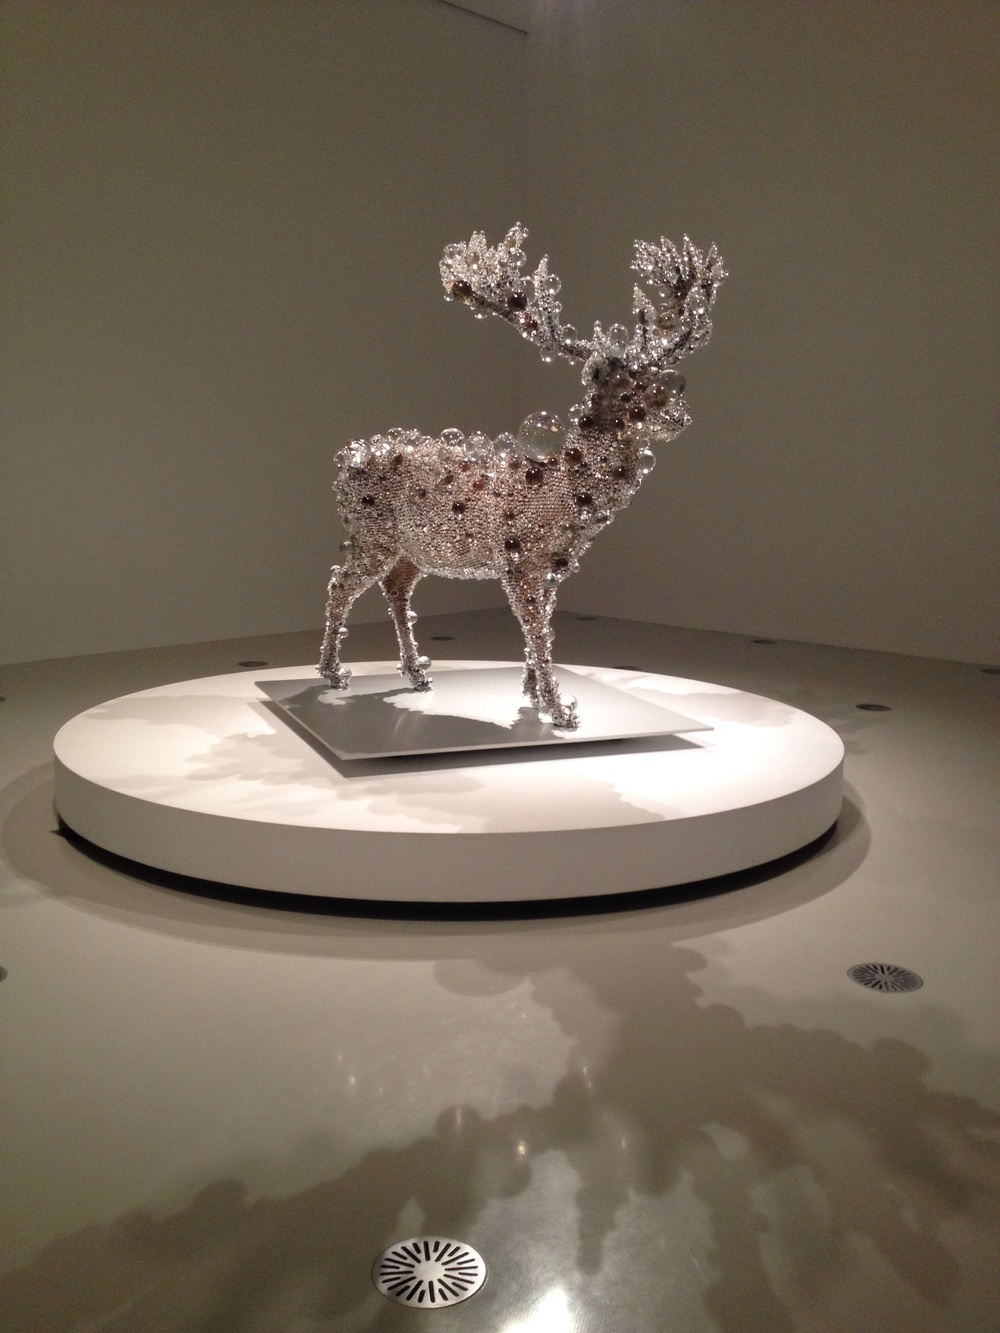 Kohei NAWA - PixCell-Red Deer (2012)